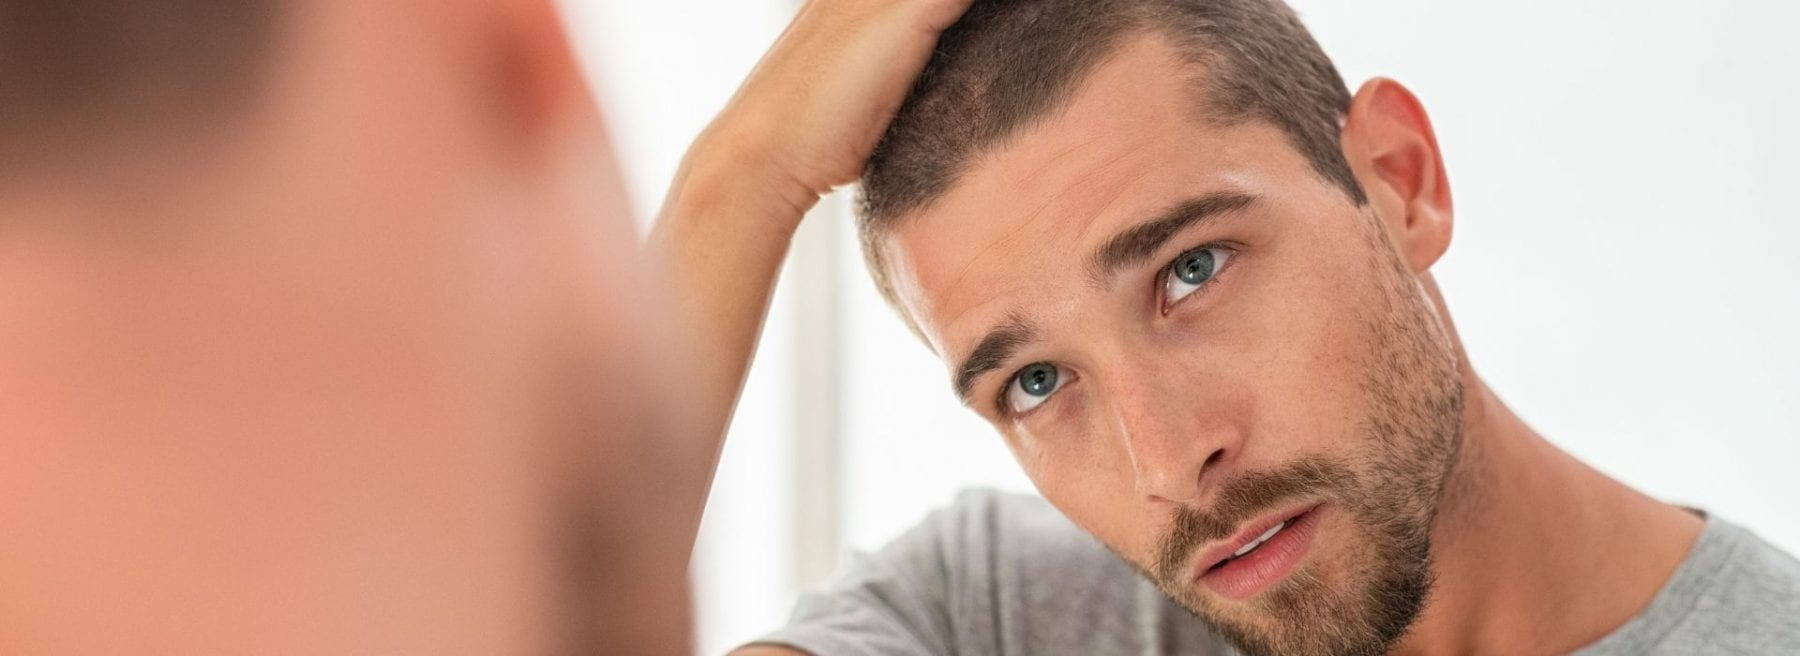 Signs of balding at 20 years old in males.